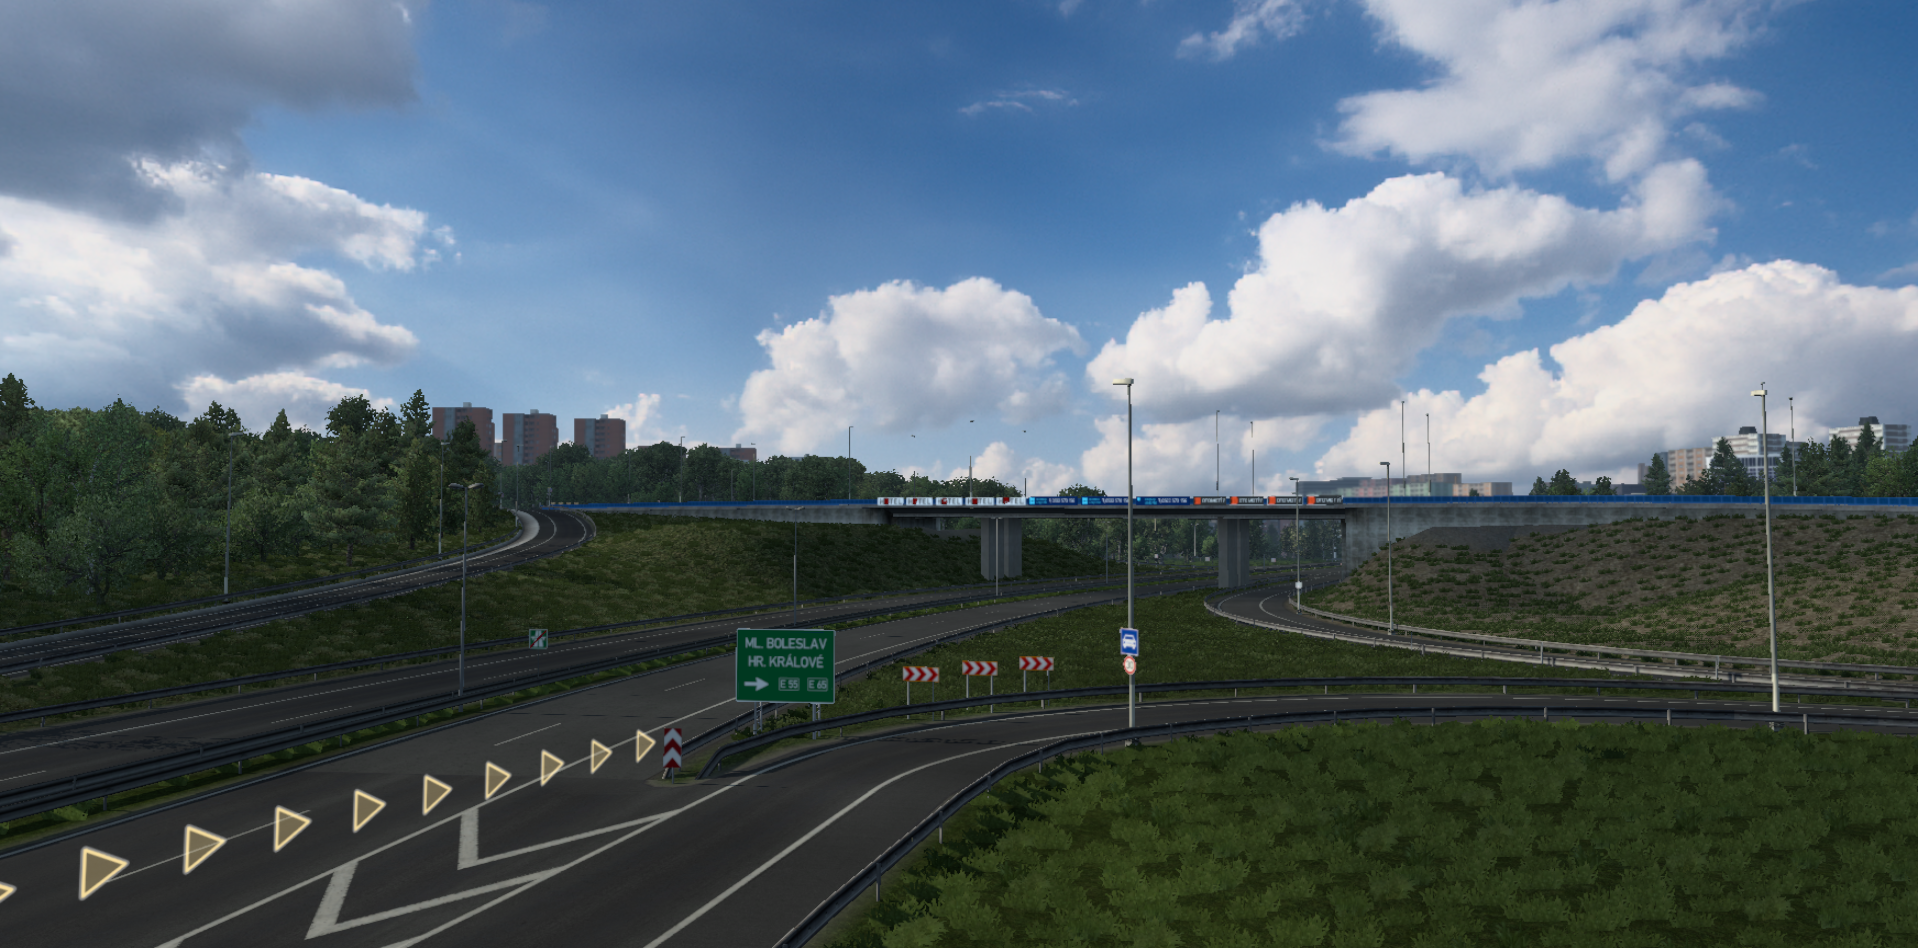 ets2_20210606_172254_00.png